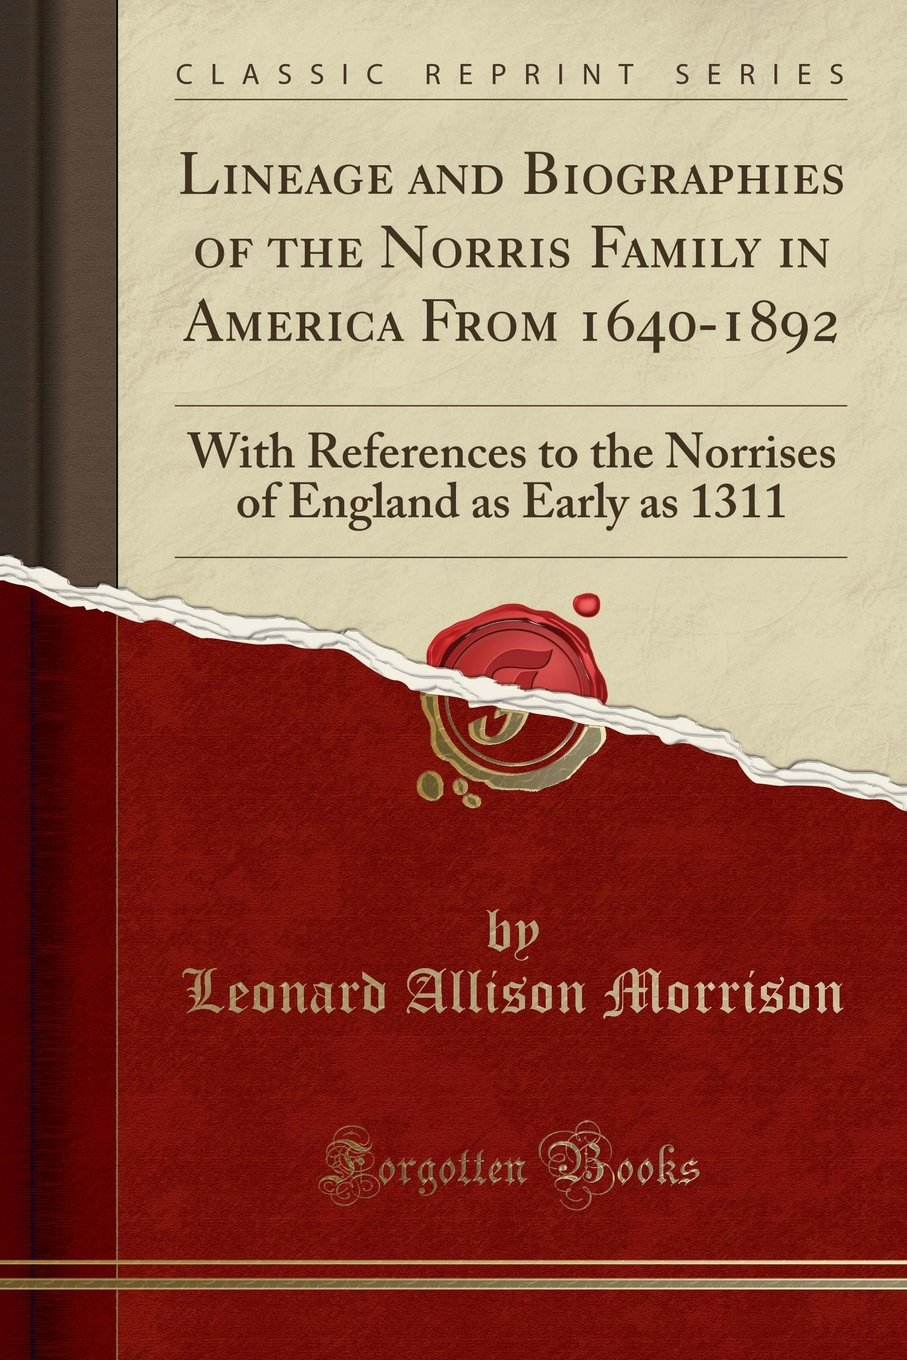 Lineage and Biographies of the Norris Family in America From 1640-1892: With References to the Norrises of England as Early as 1311 (Classic Reprint) ebook